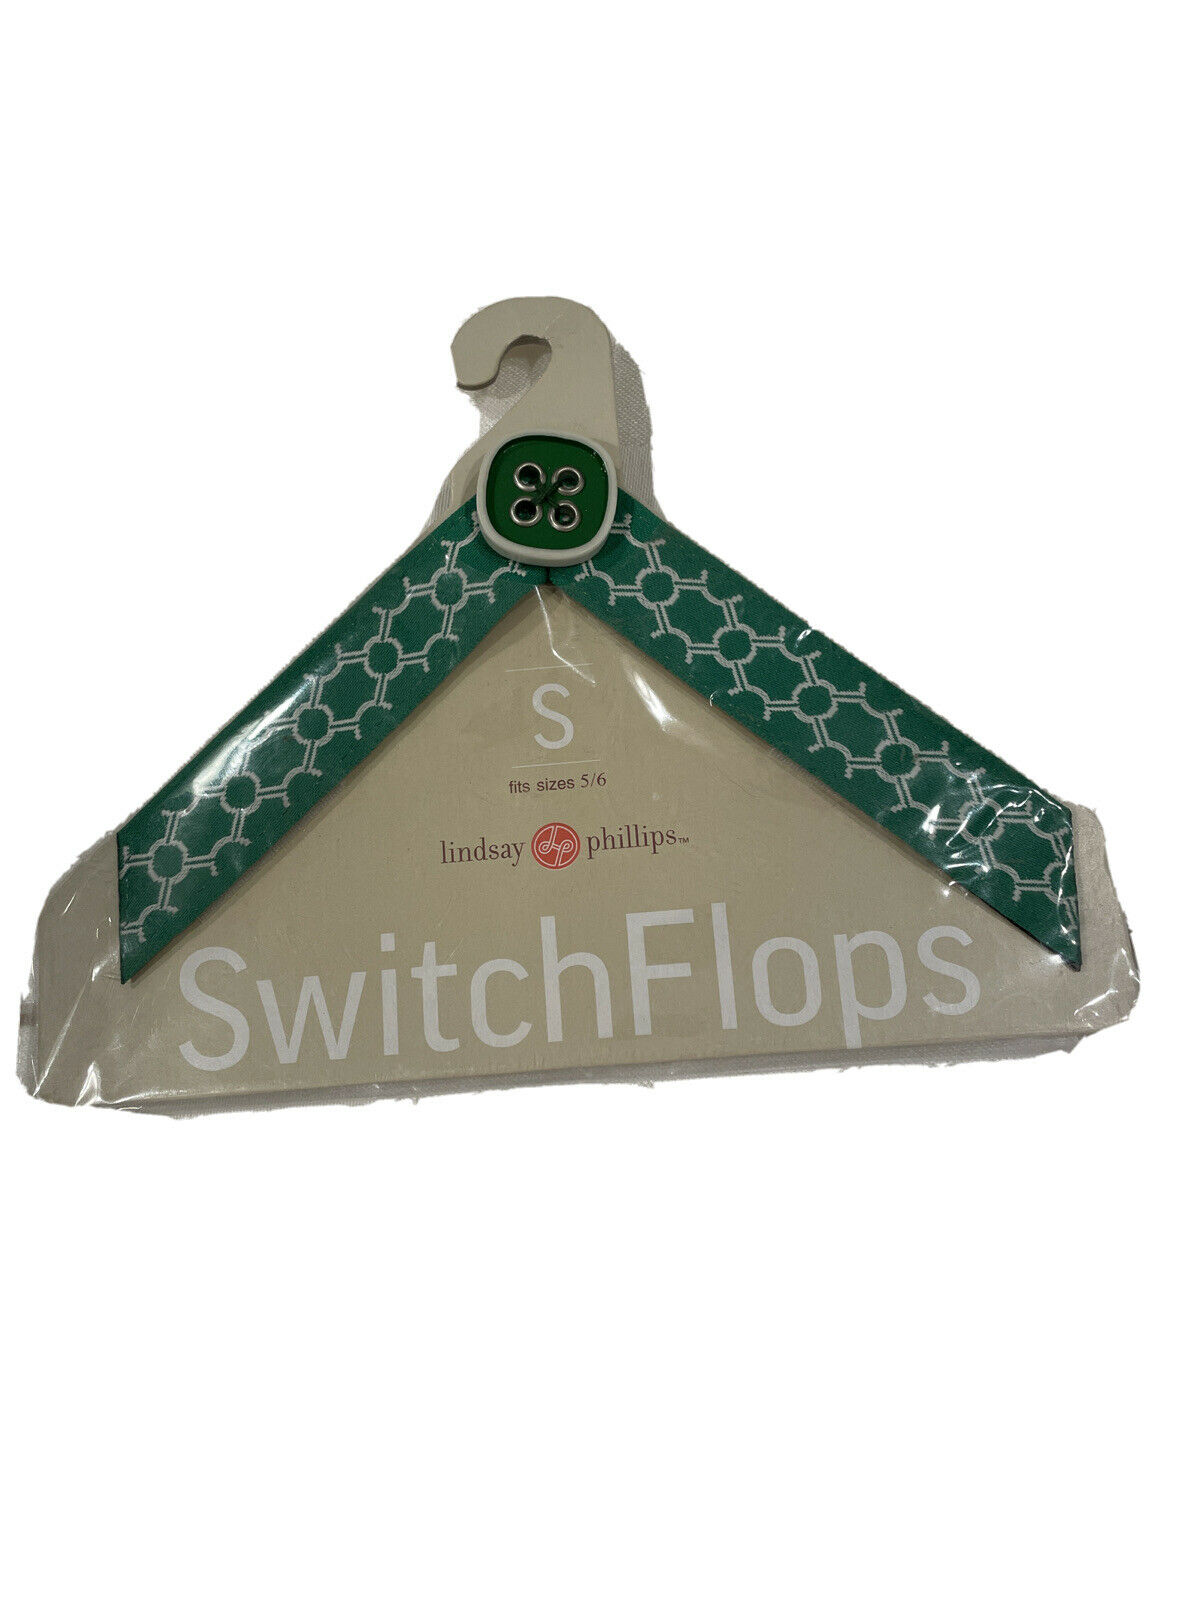 Lindsay Phillips Switchflops Straps Fran Small (5/6) NEW WITHOUT TAGS